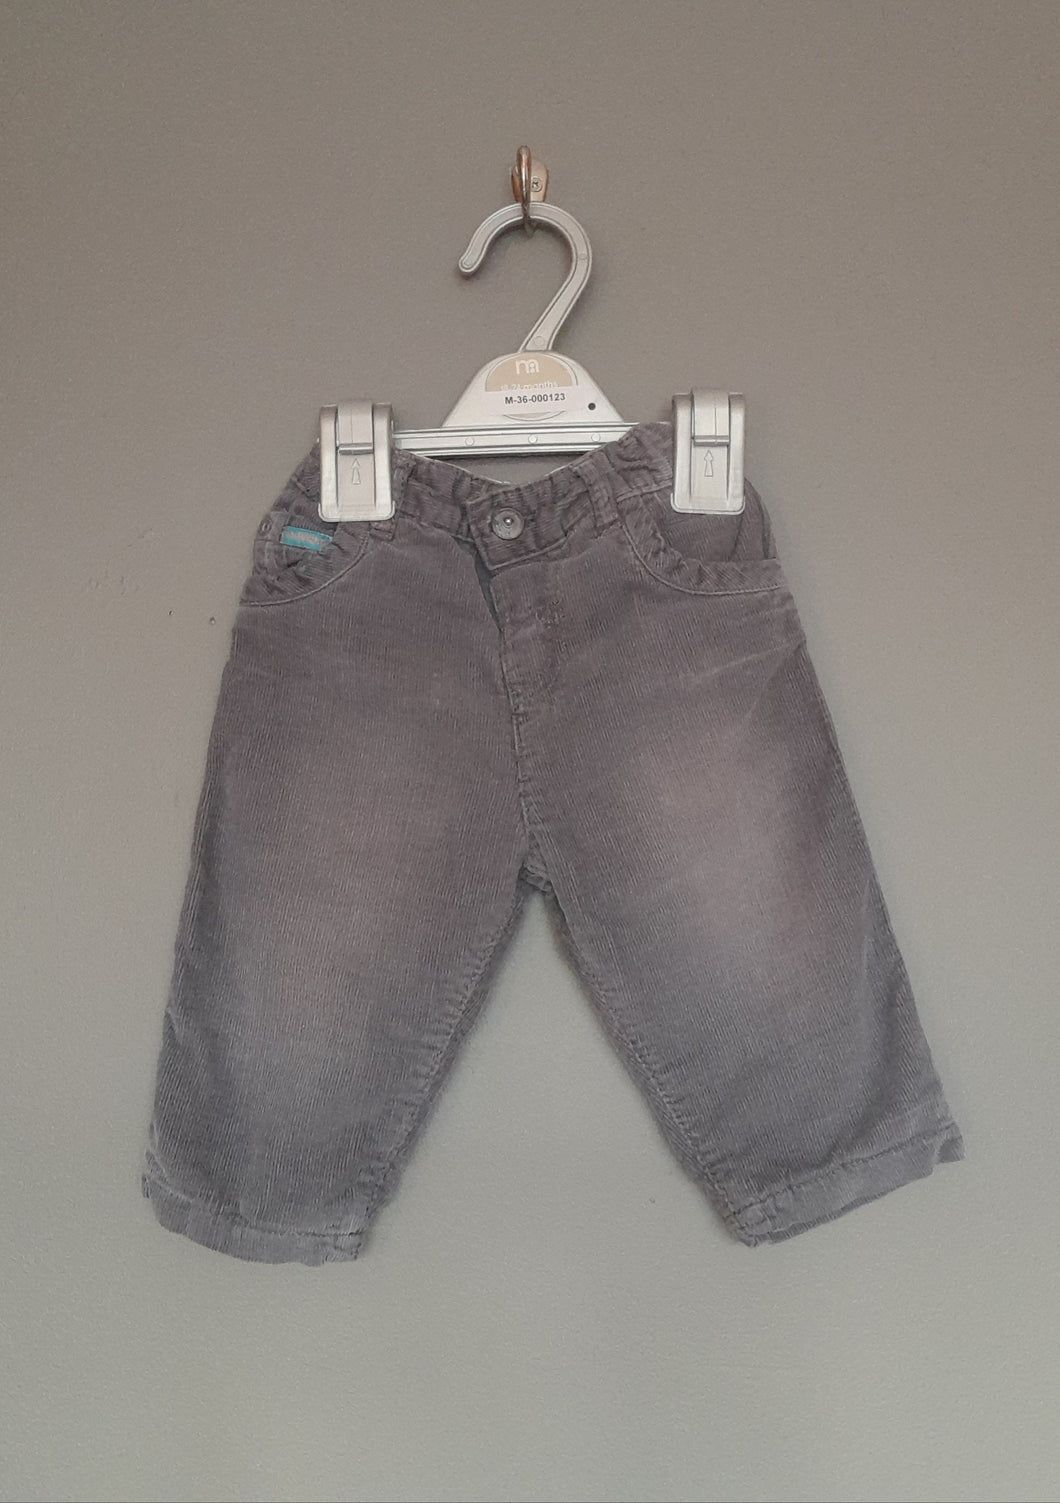 3-6 months Grey Cord pants - Autograph M&S